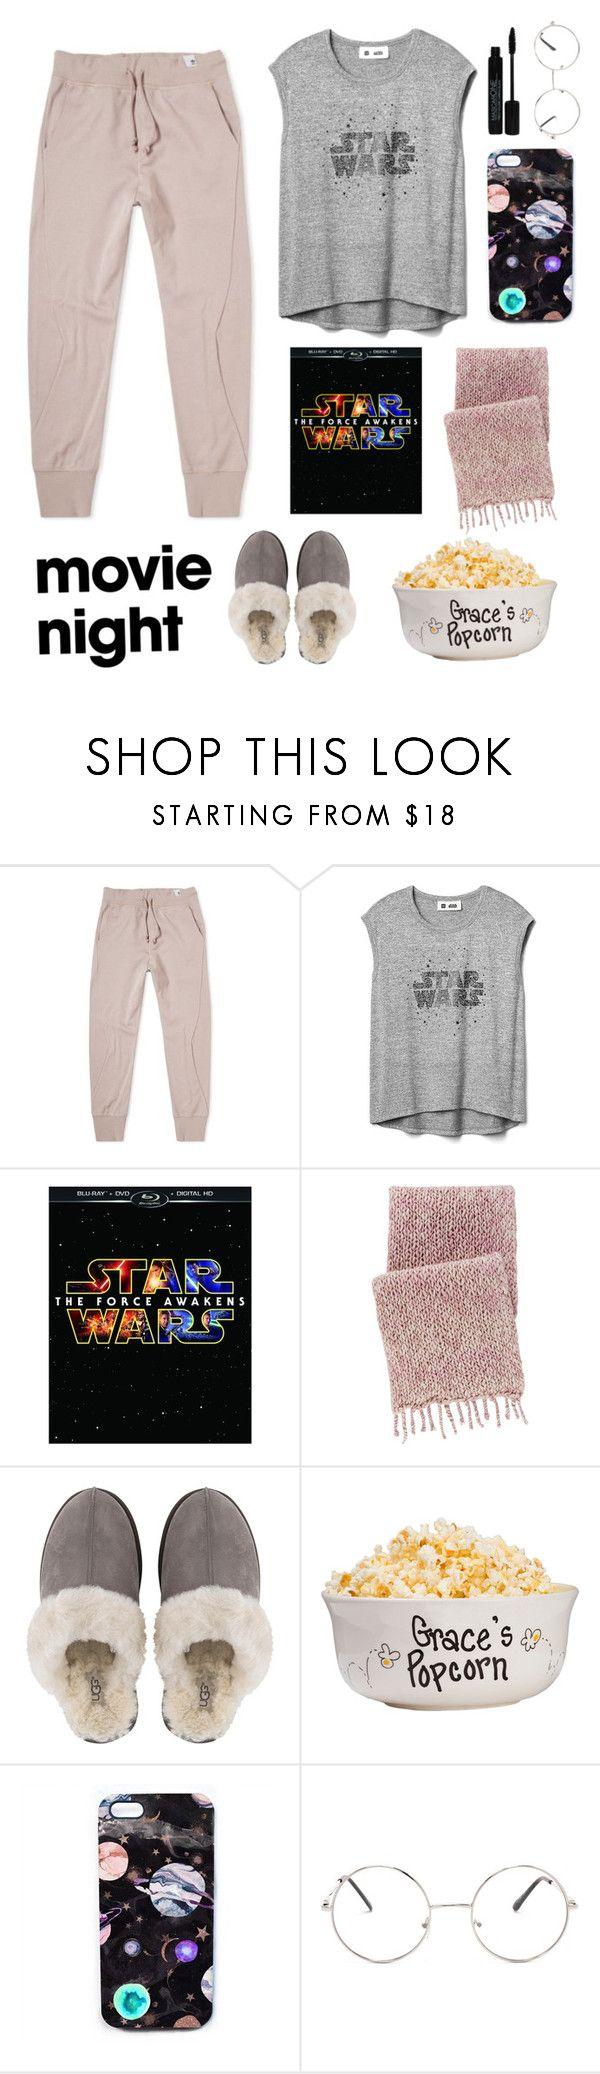 """Movie night"" by tlou14griffiths ❤ liked on Polyvore featuring adidas, Gap, Pine Cone Hill, UGG, Nikki Strange and Nasty Gal"